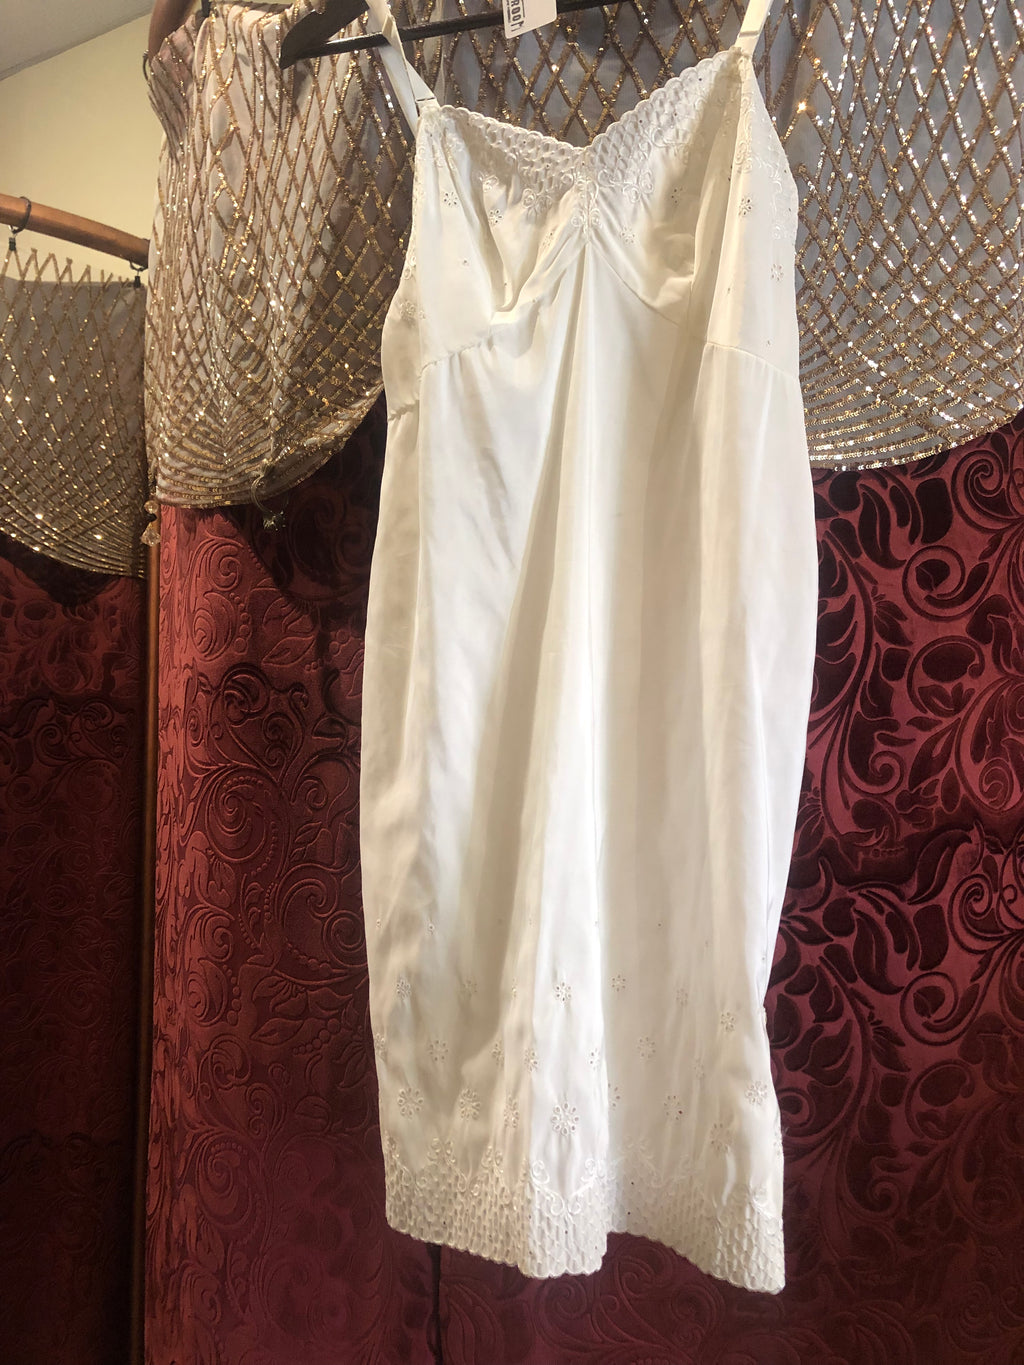 "Women's Lingerie: Vintage 1960s ""Aristocraft"" White Full Slip with Eyelet Embroidery"